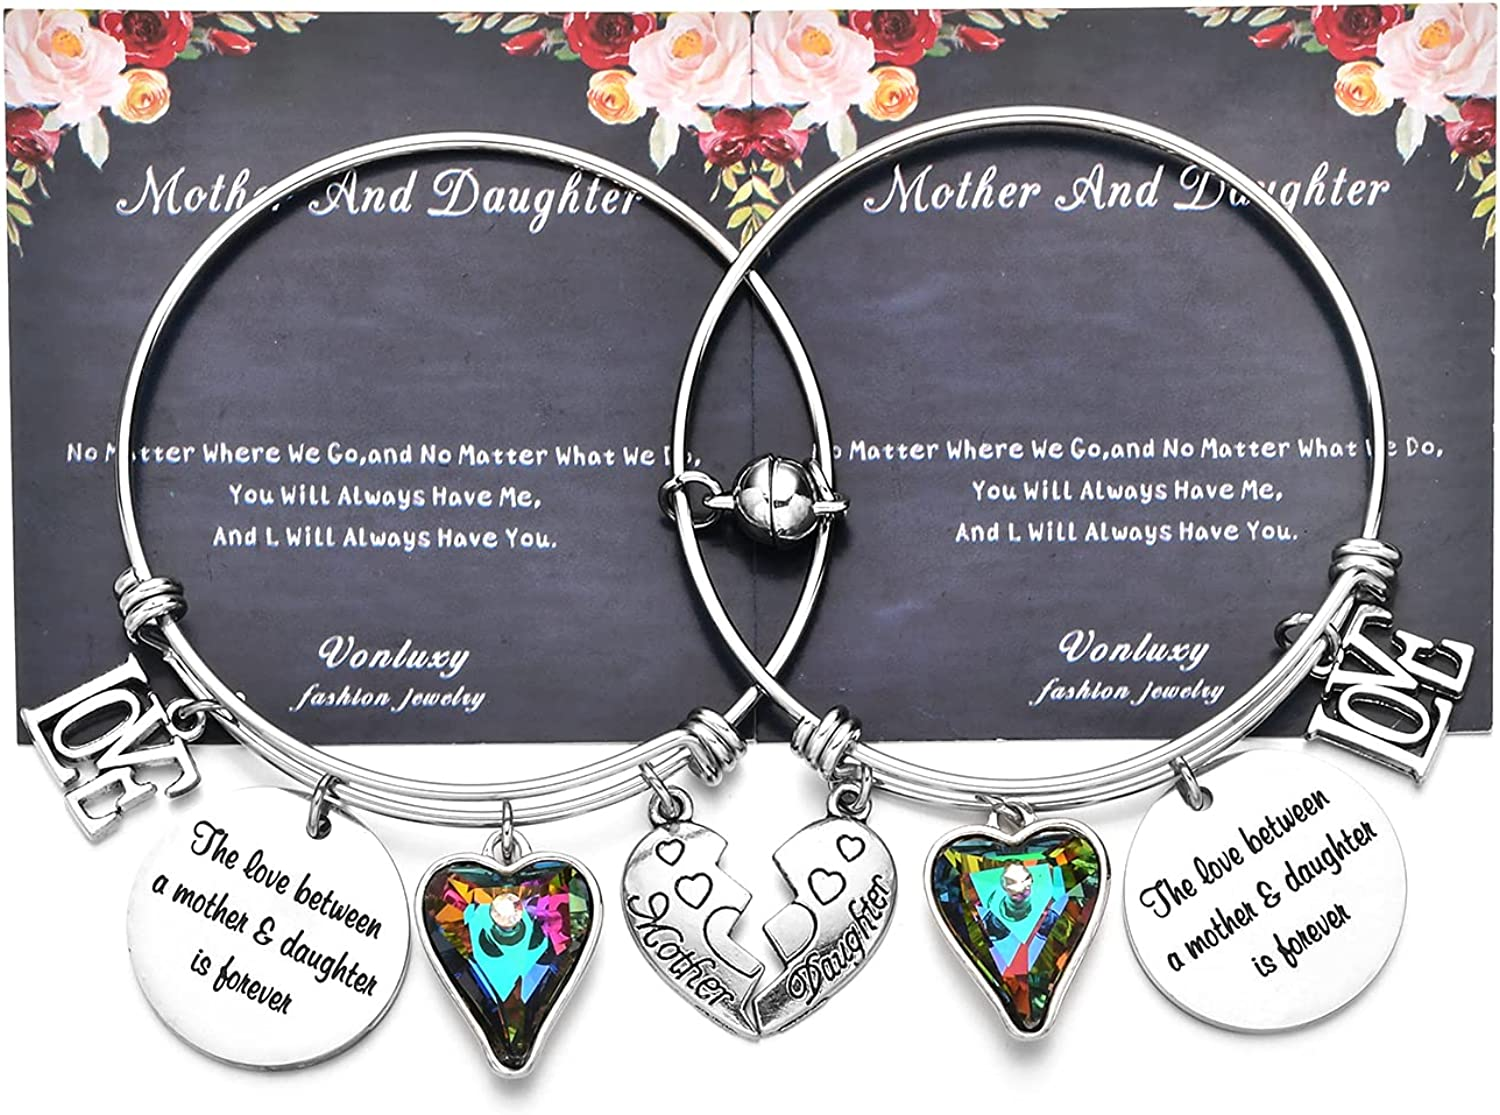 Vonluxy Magnetic Mother Daughter Bracelets Set for 2 Mothers Day Present from Daughter for Mom Mother of The Bride Gifts Matching Stainless Steel Bangle Charm Bracelet for Women Teen Girls